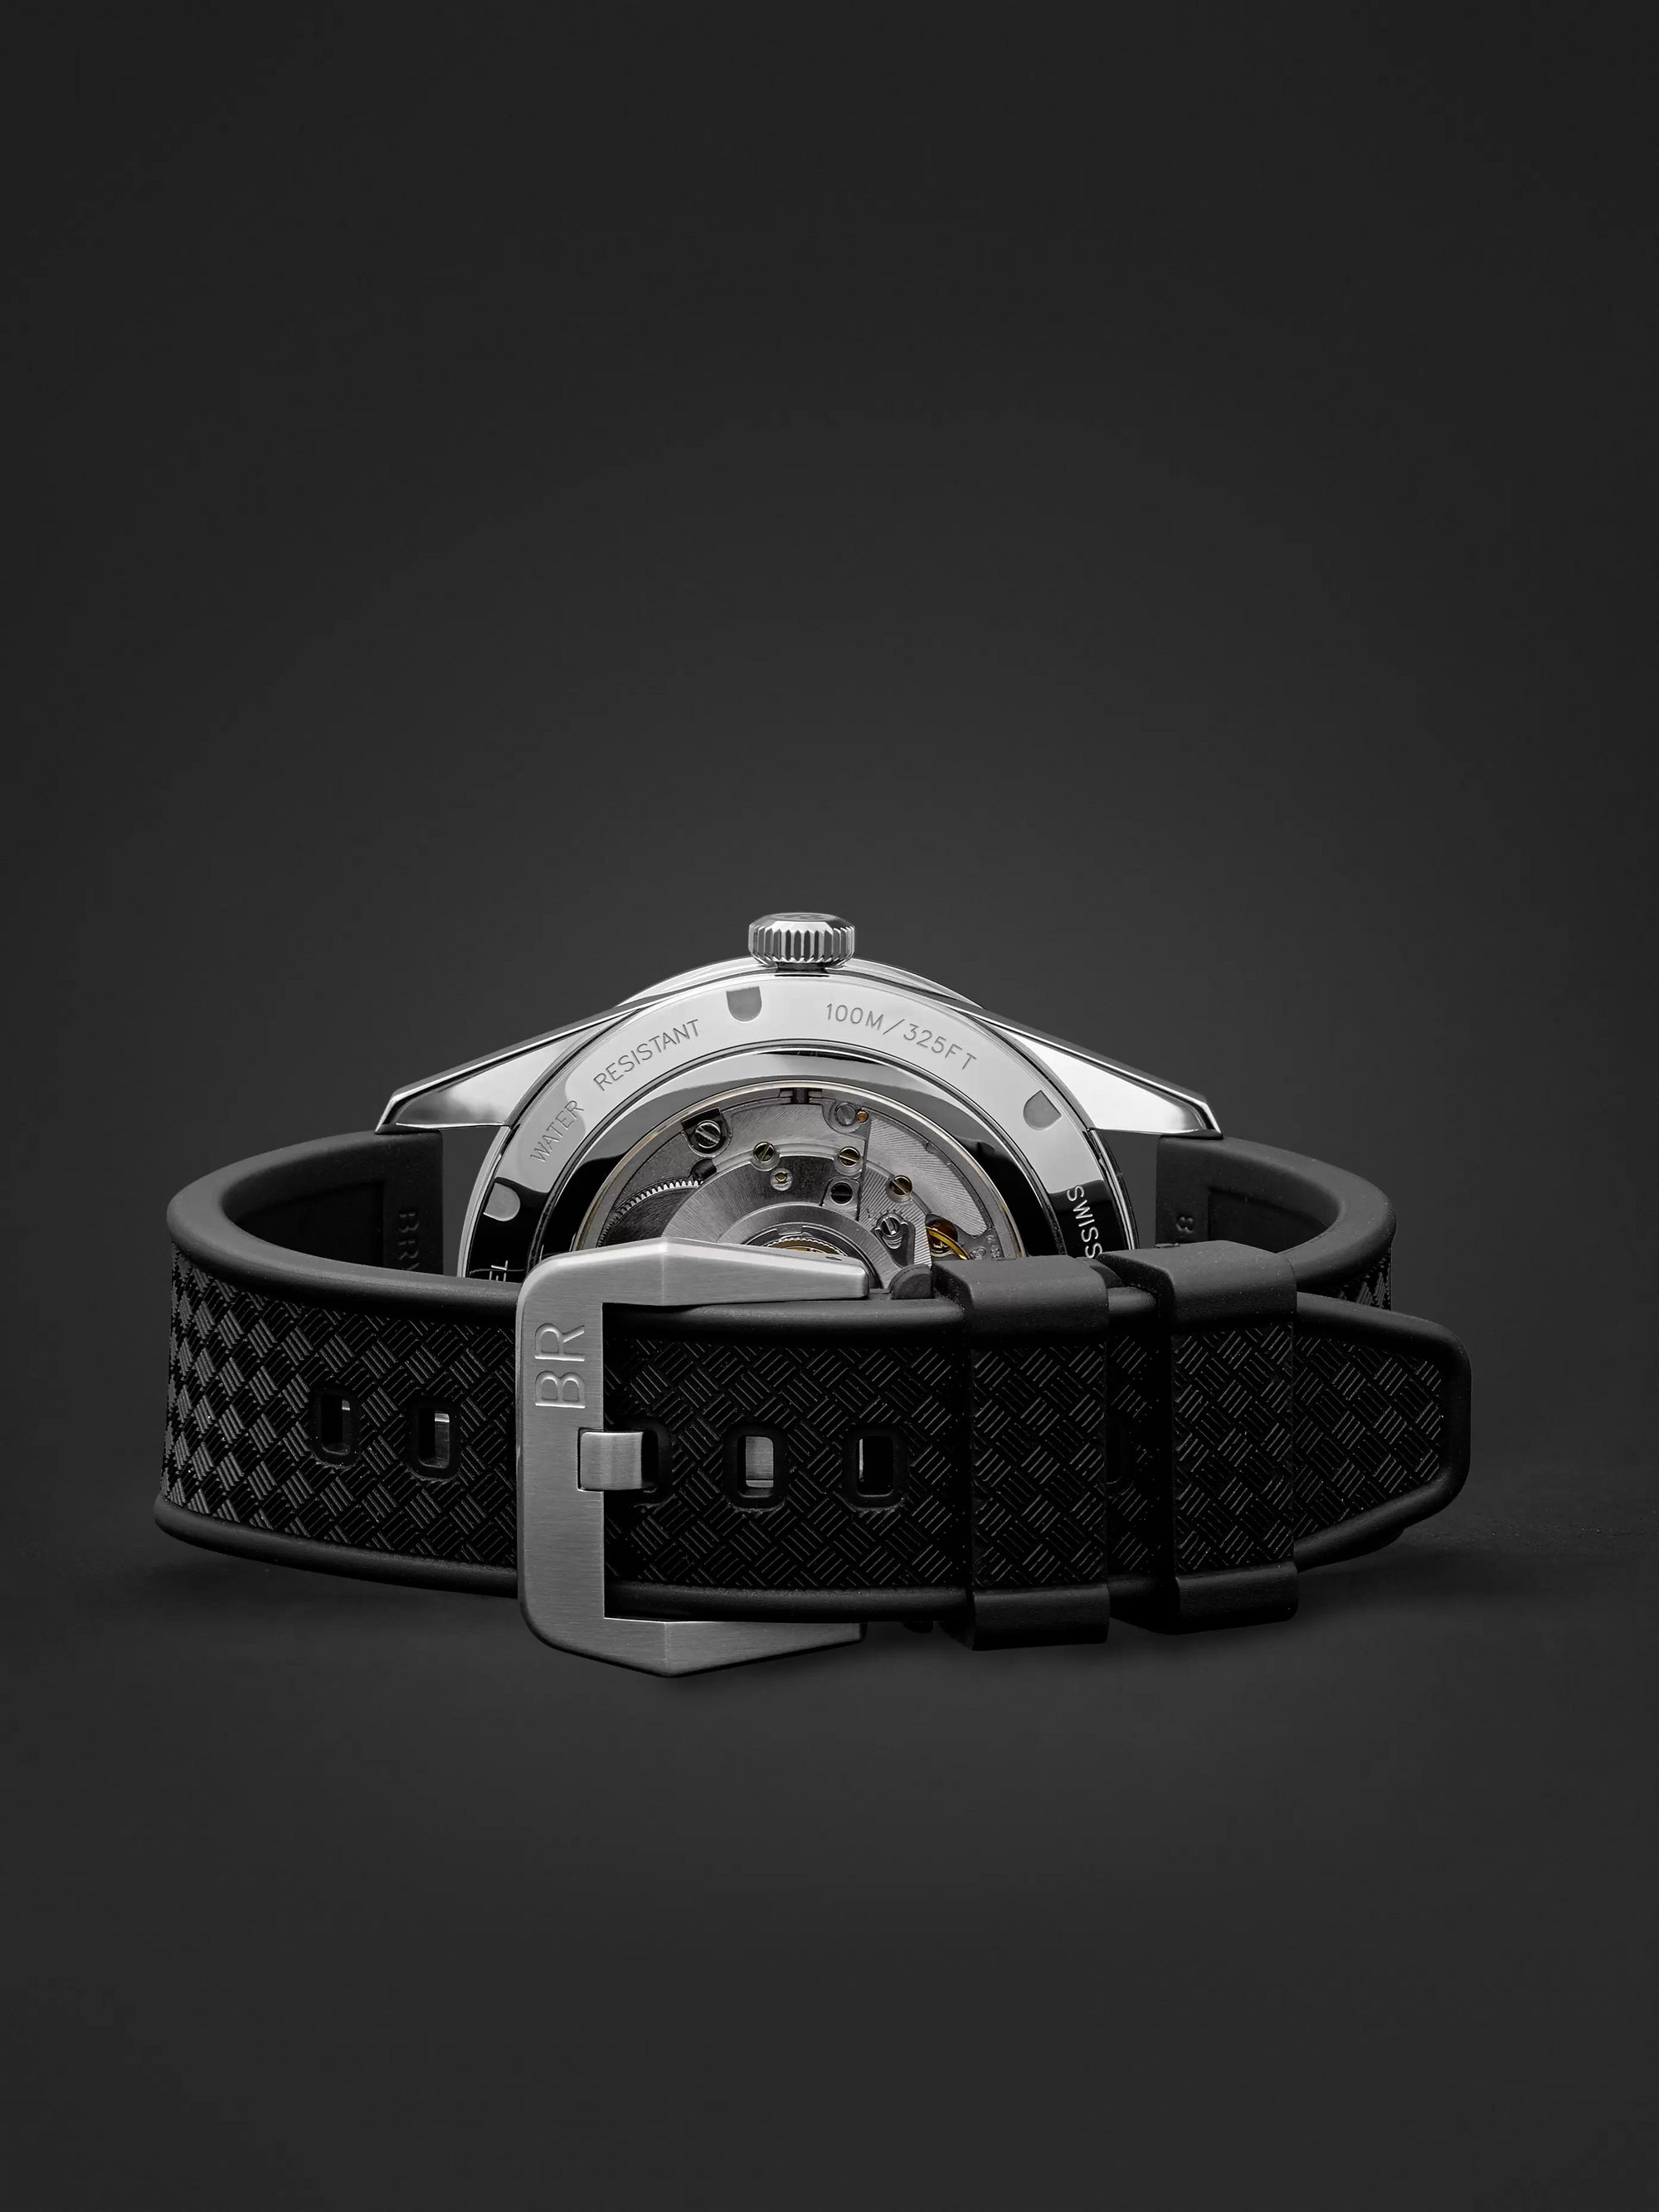 Bell & Ross BR 123 42mm Steel and Rubber Watch, Ref. No. BRV123-BL-GMT/SRB